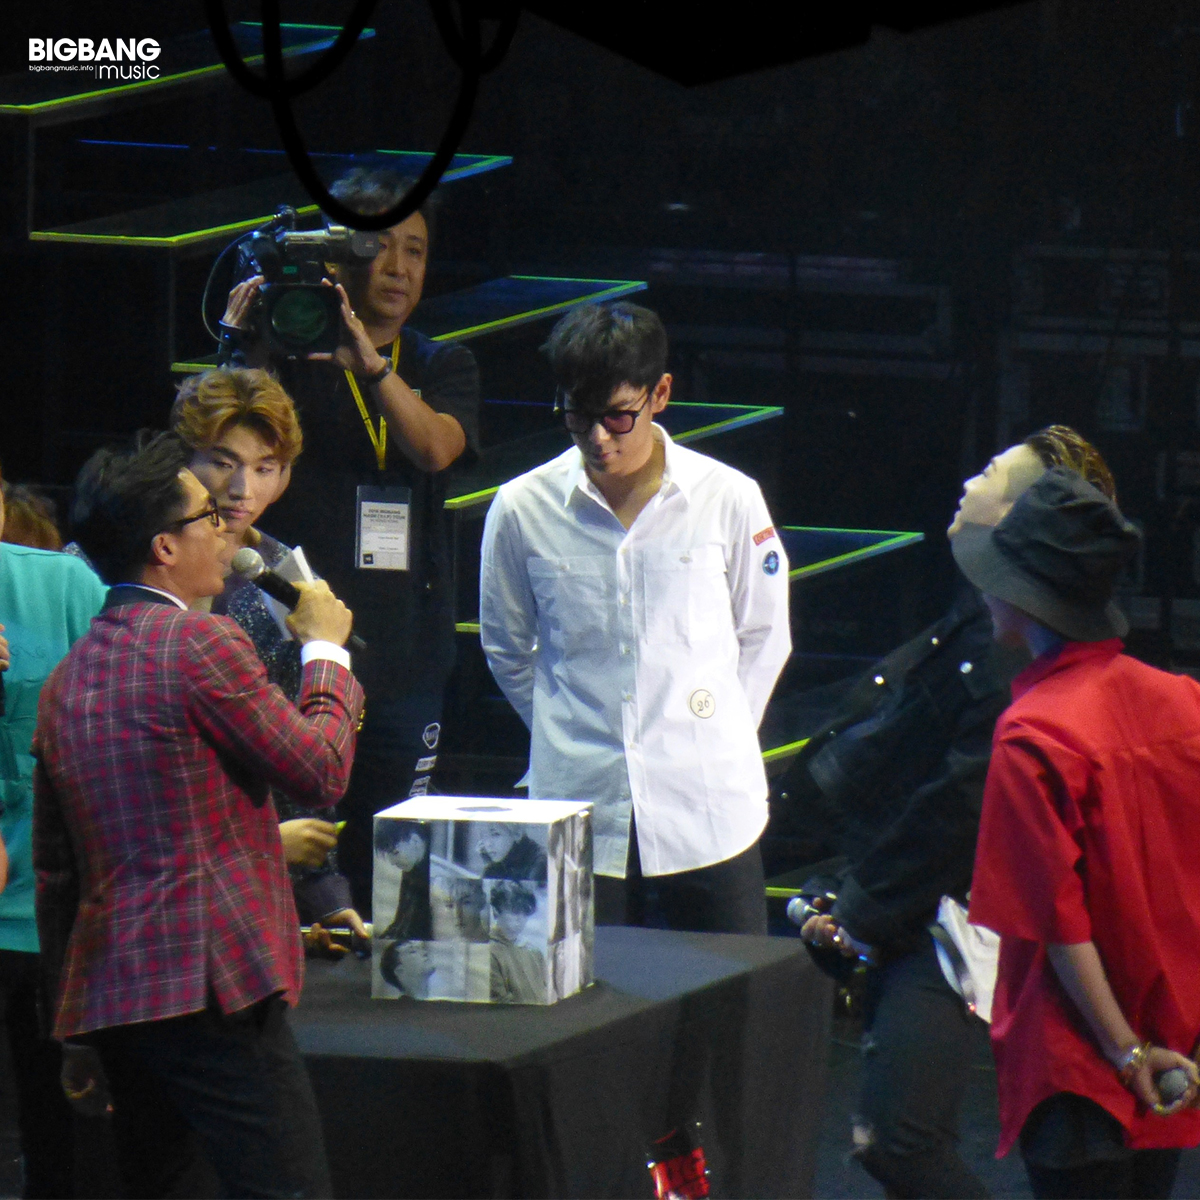 BBmusic-BIGBANG-Hong-Kong-Day-1-2016-07-22